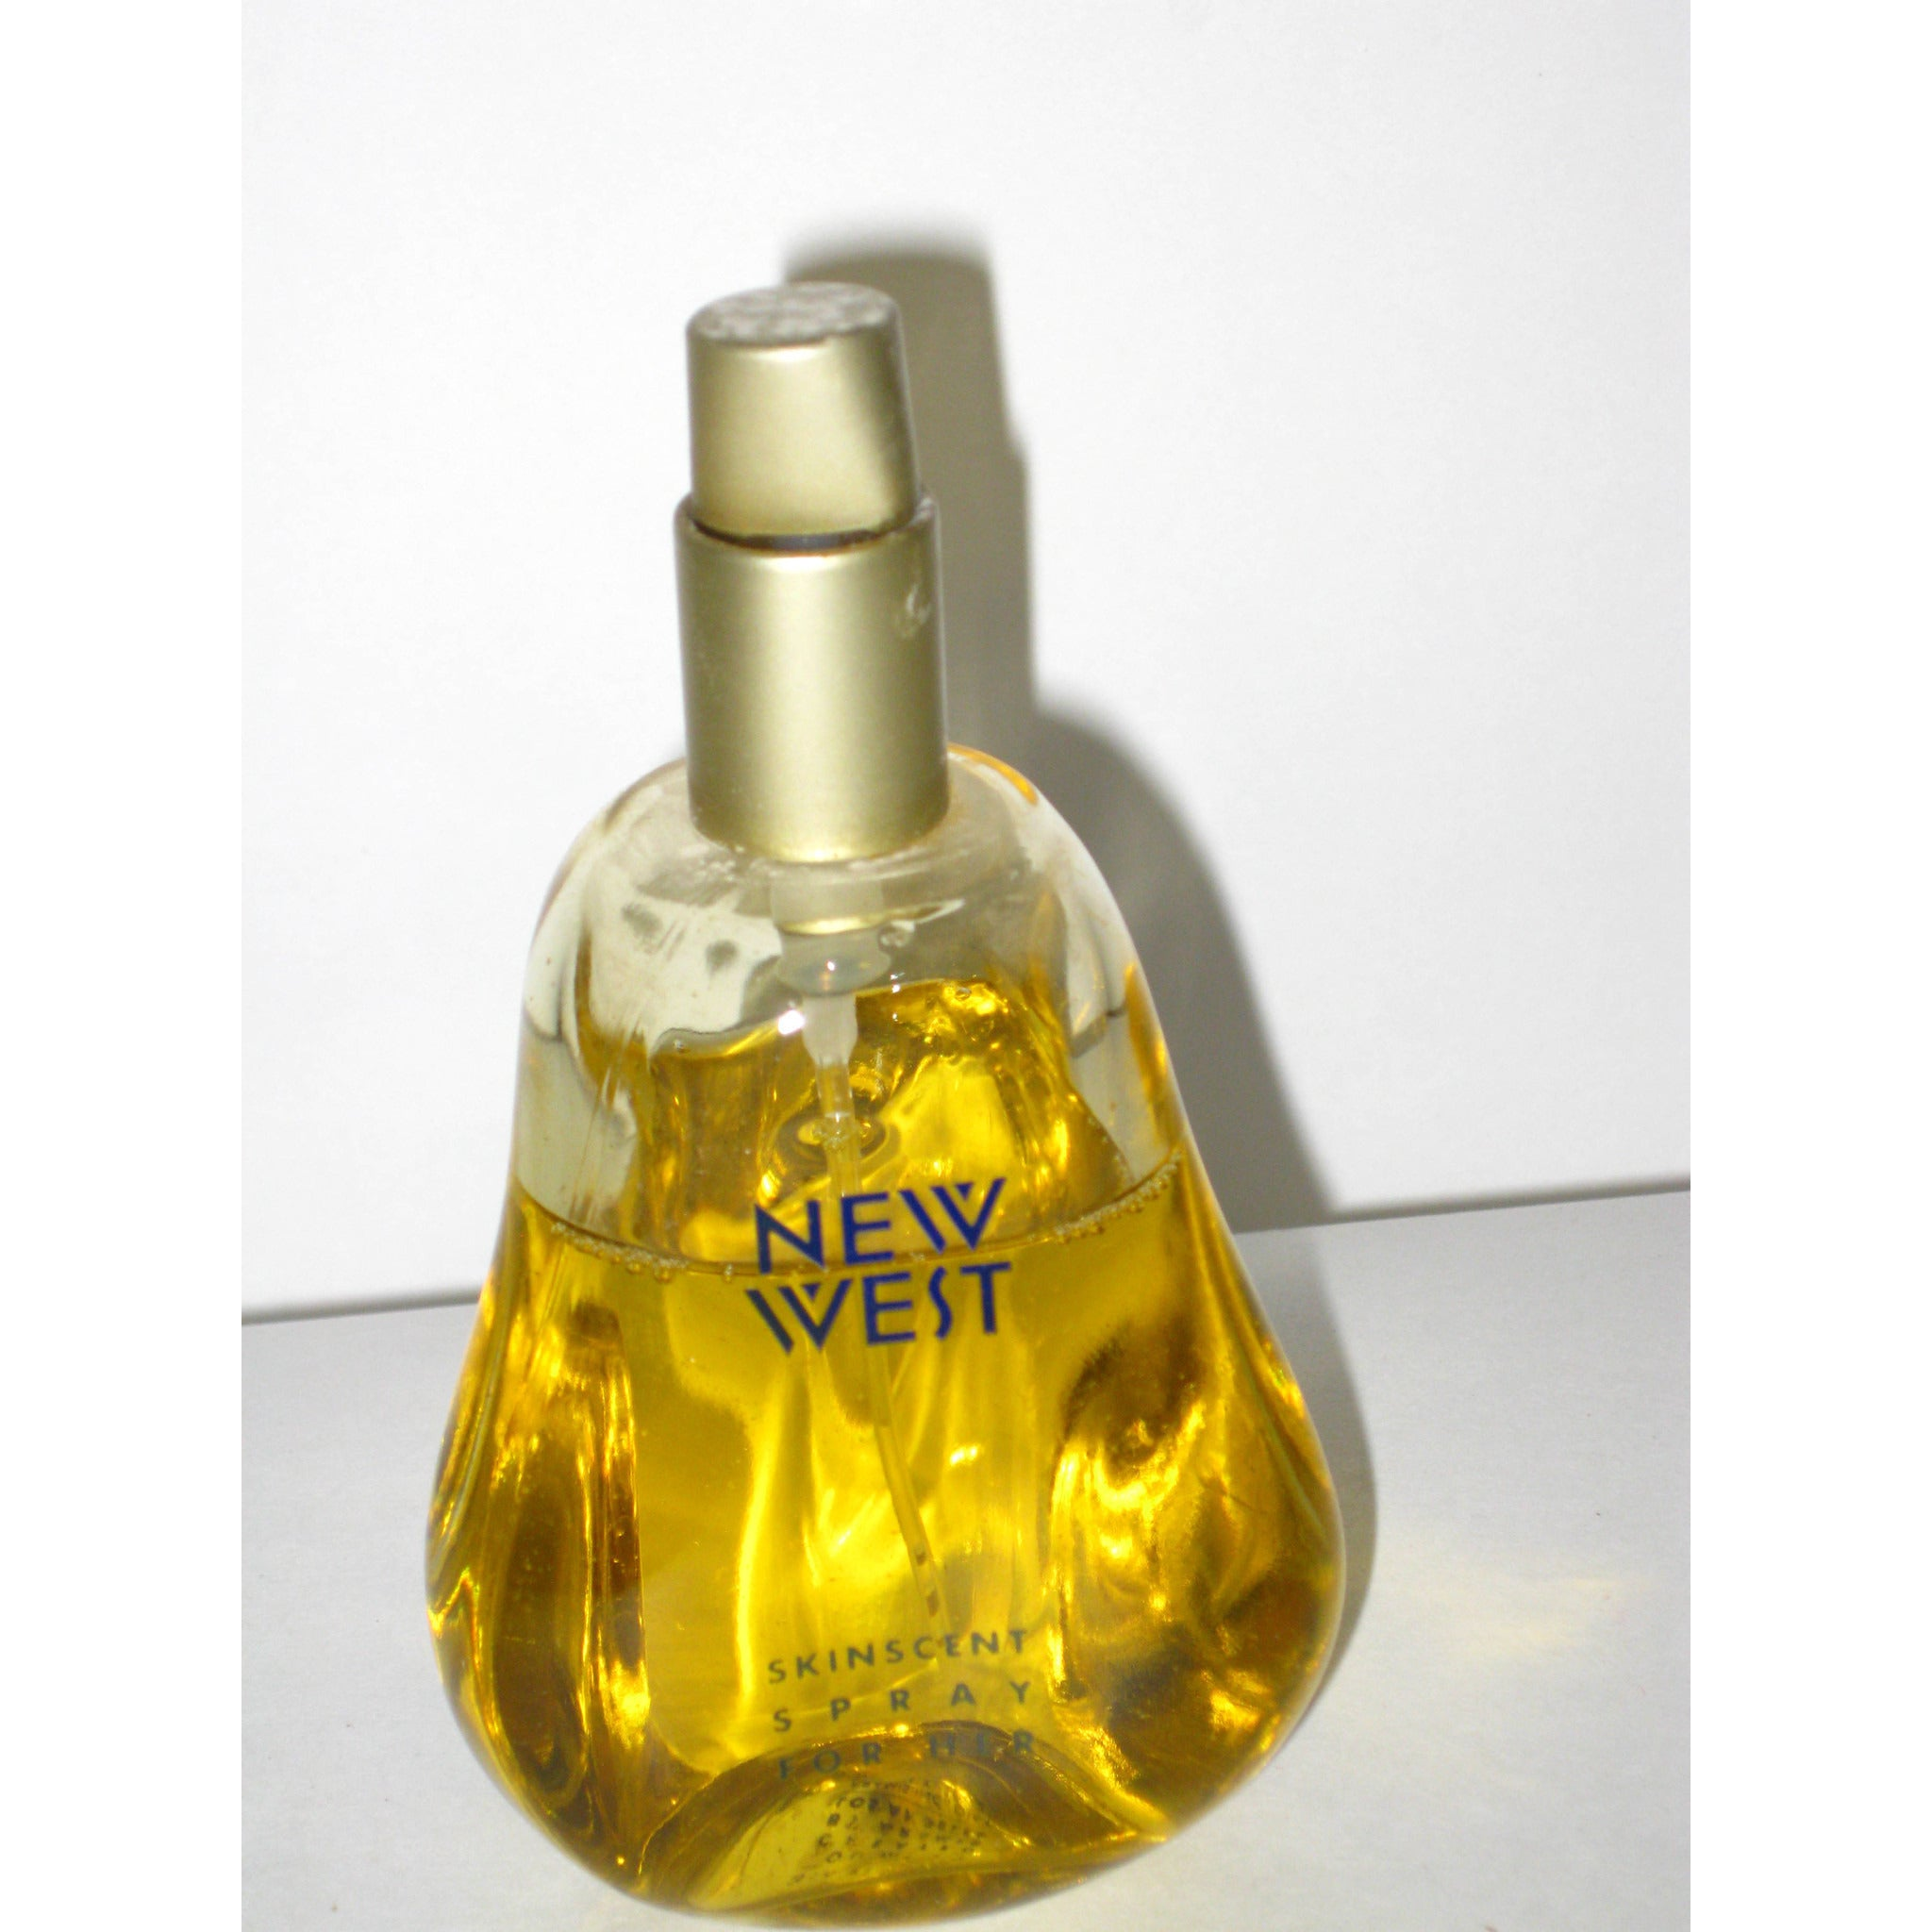 Vintage Aramis New West Scent Spray For Her